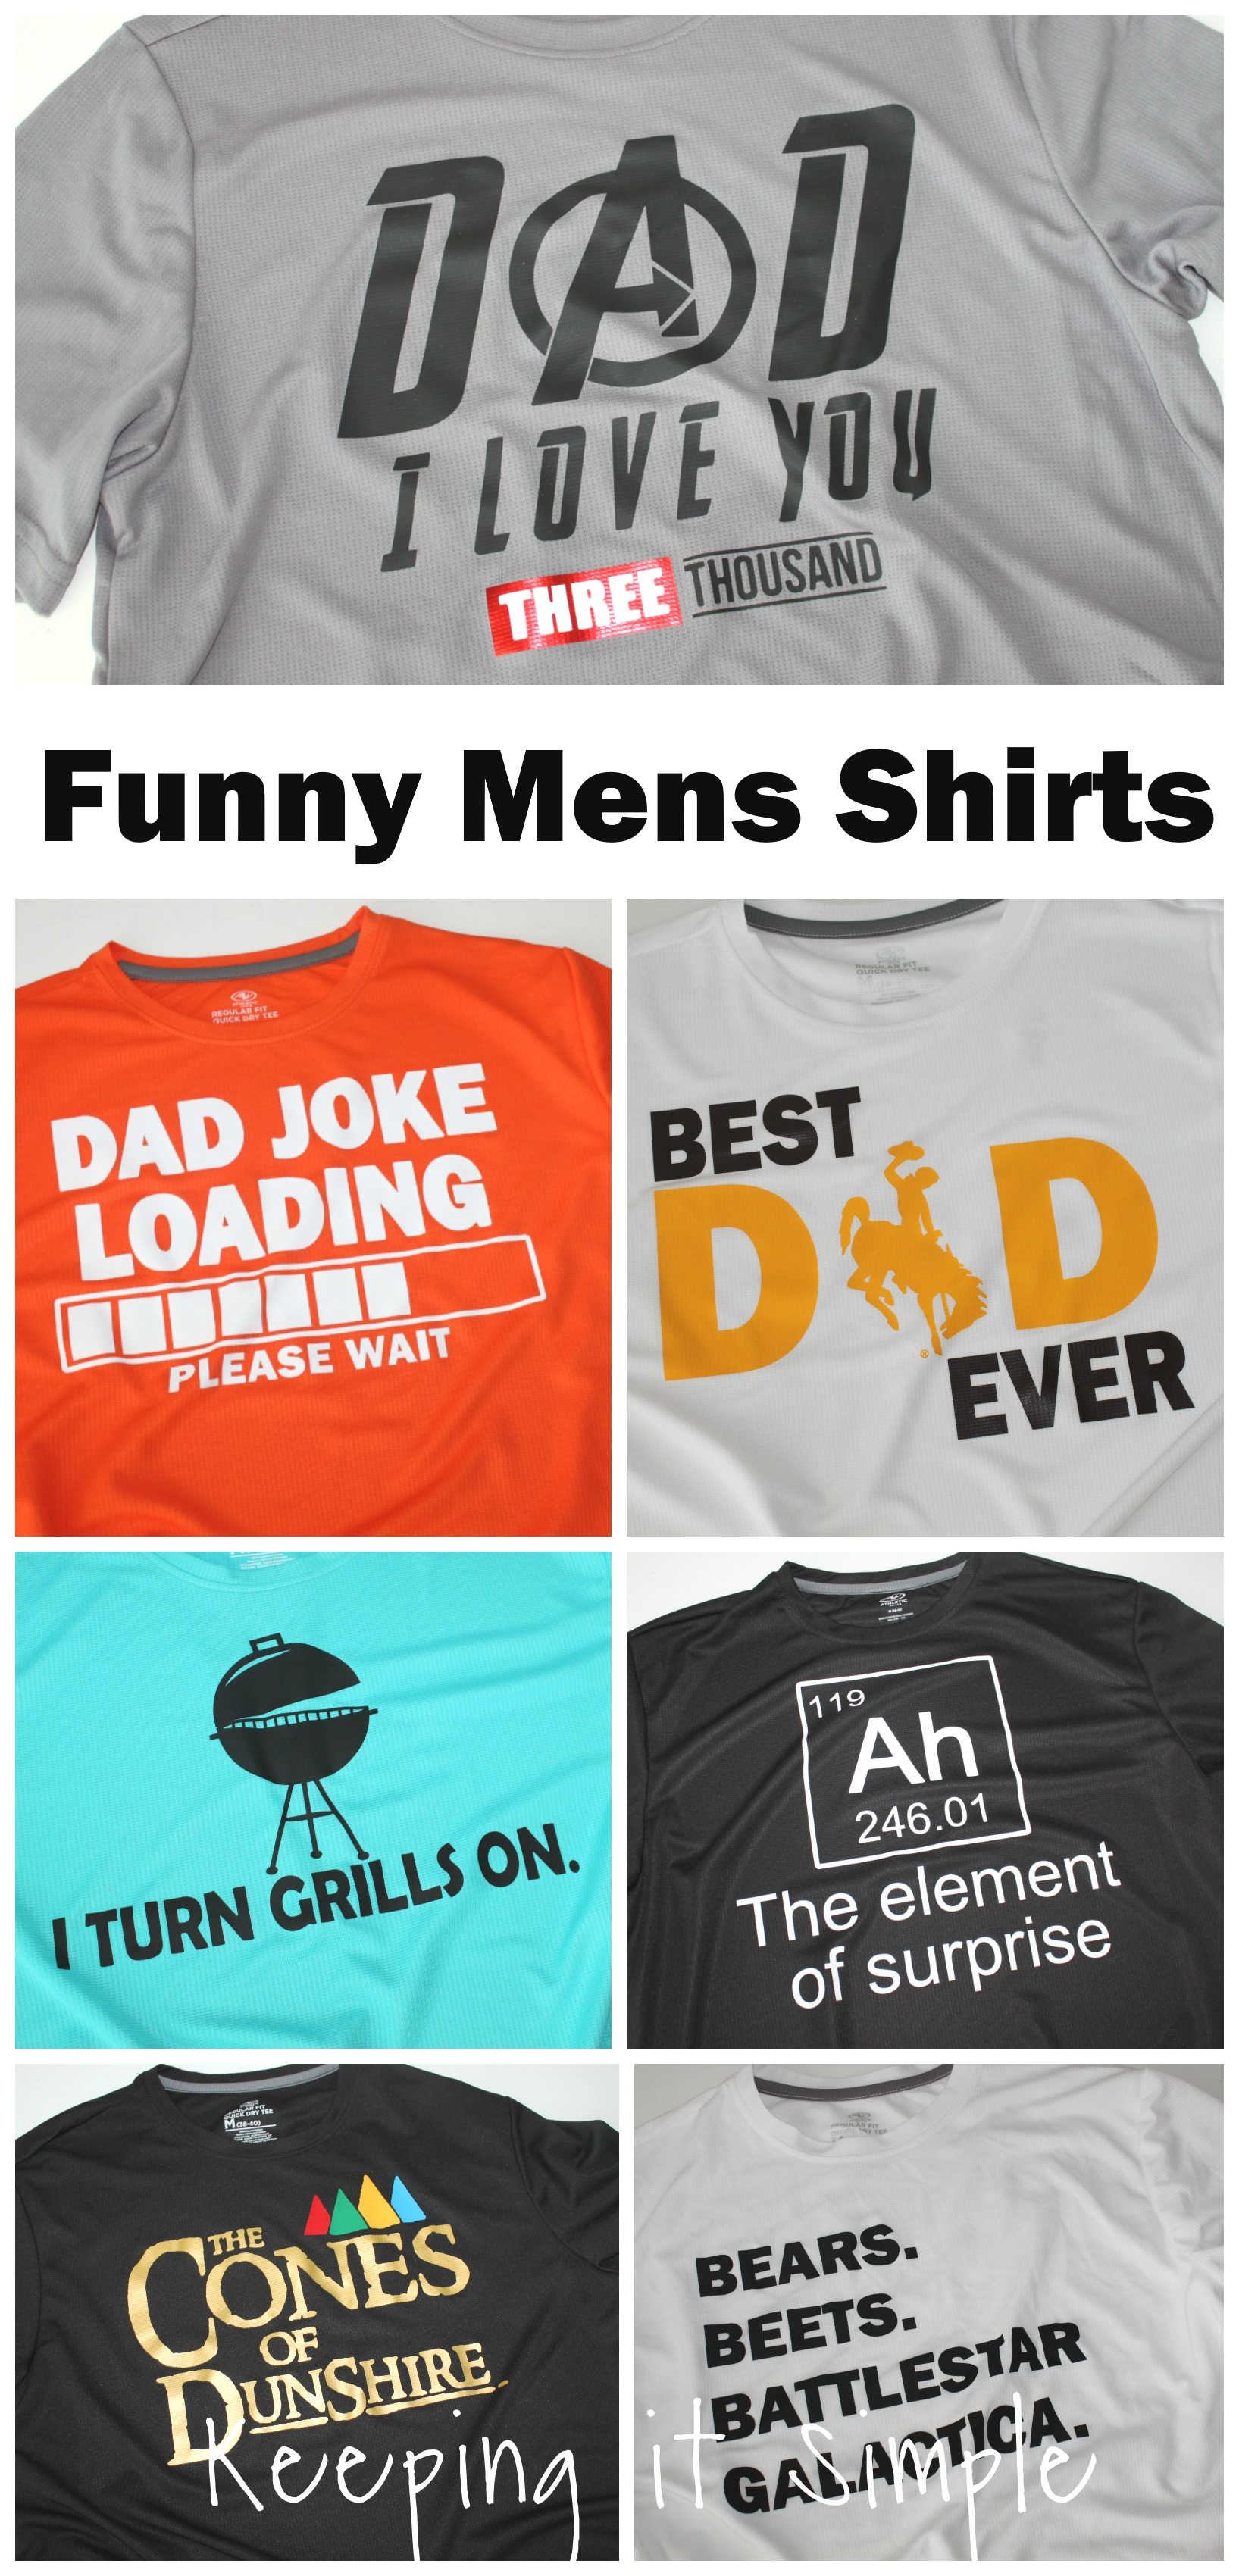 Funny Mens Shirts {Father's Day Shirts} • Keeping it Simple